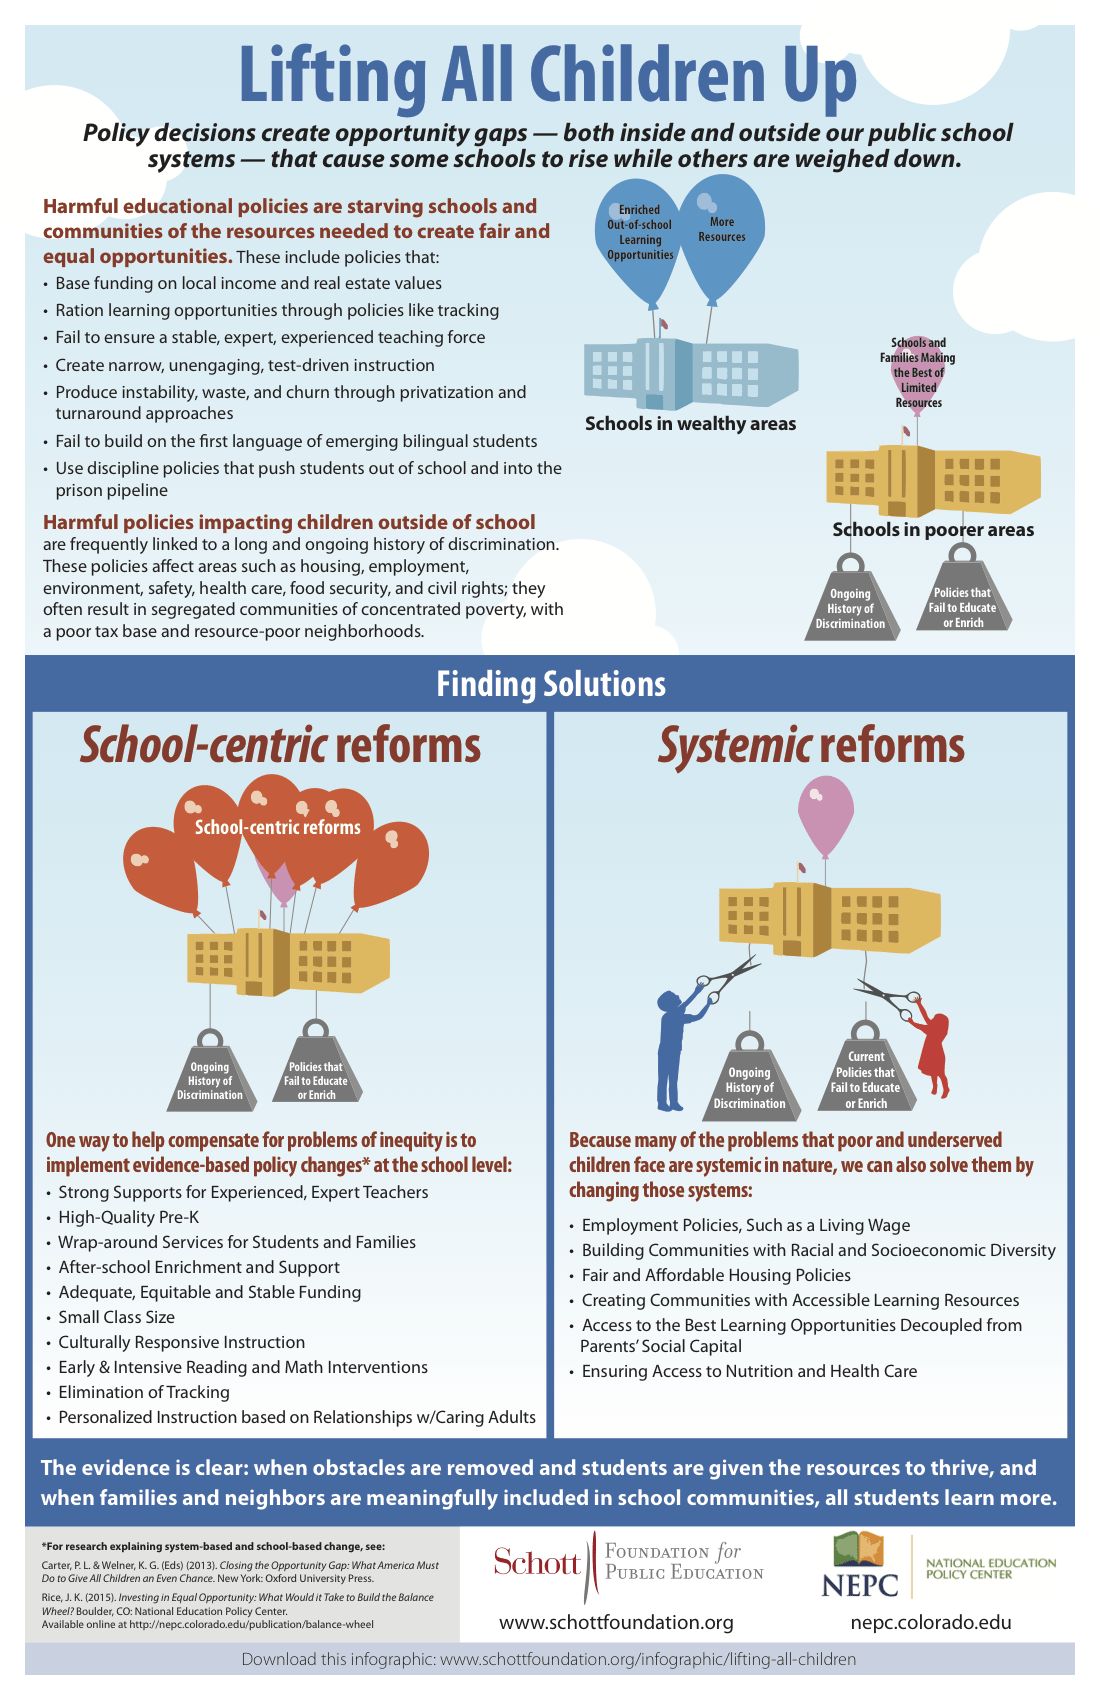 Lifting All Children Up - National Education Policy Center